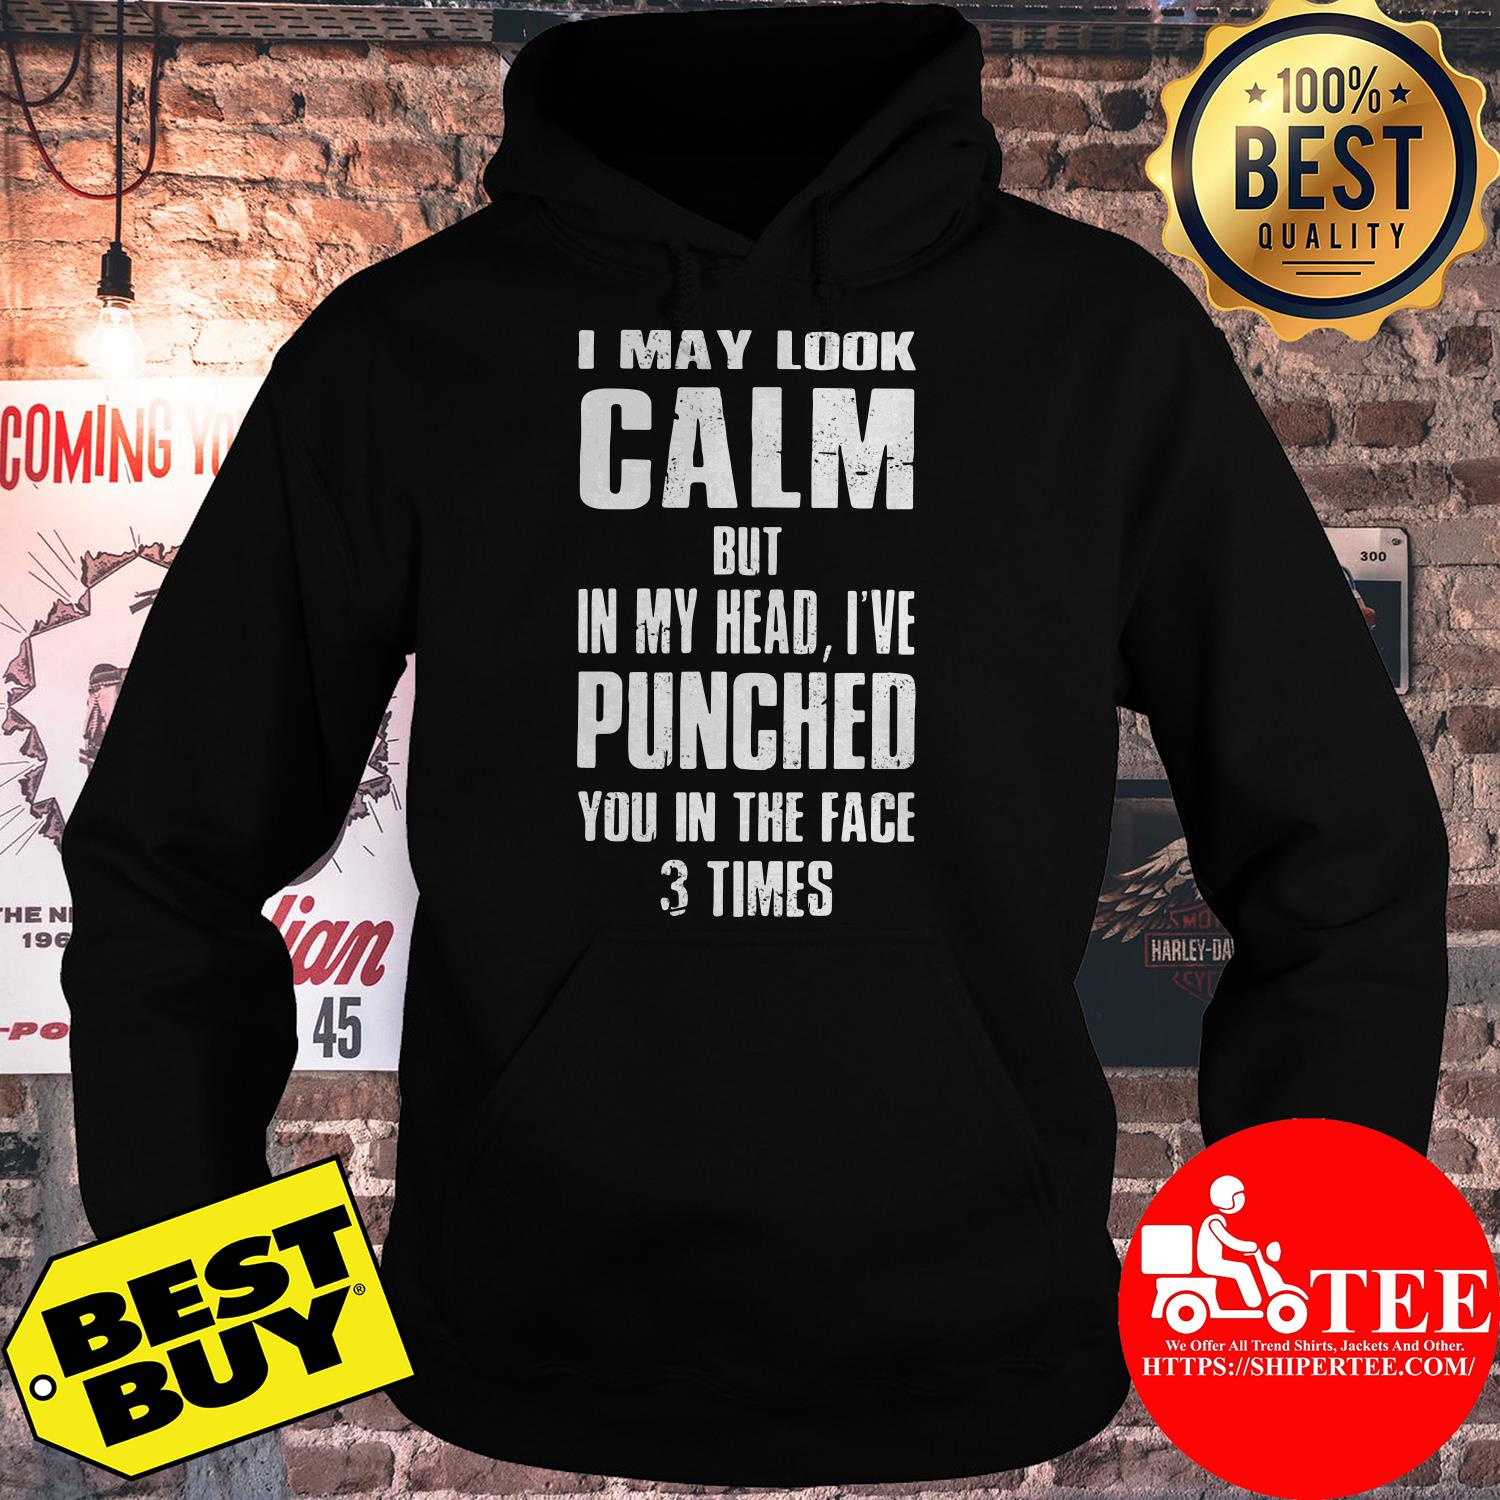 I may look calm but in my head I've punched you in the face 3 times hoodie